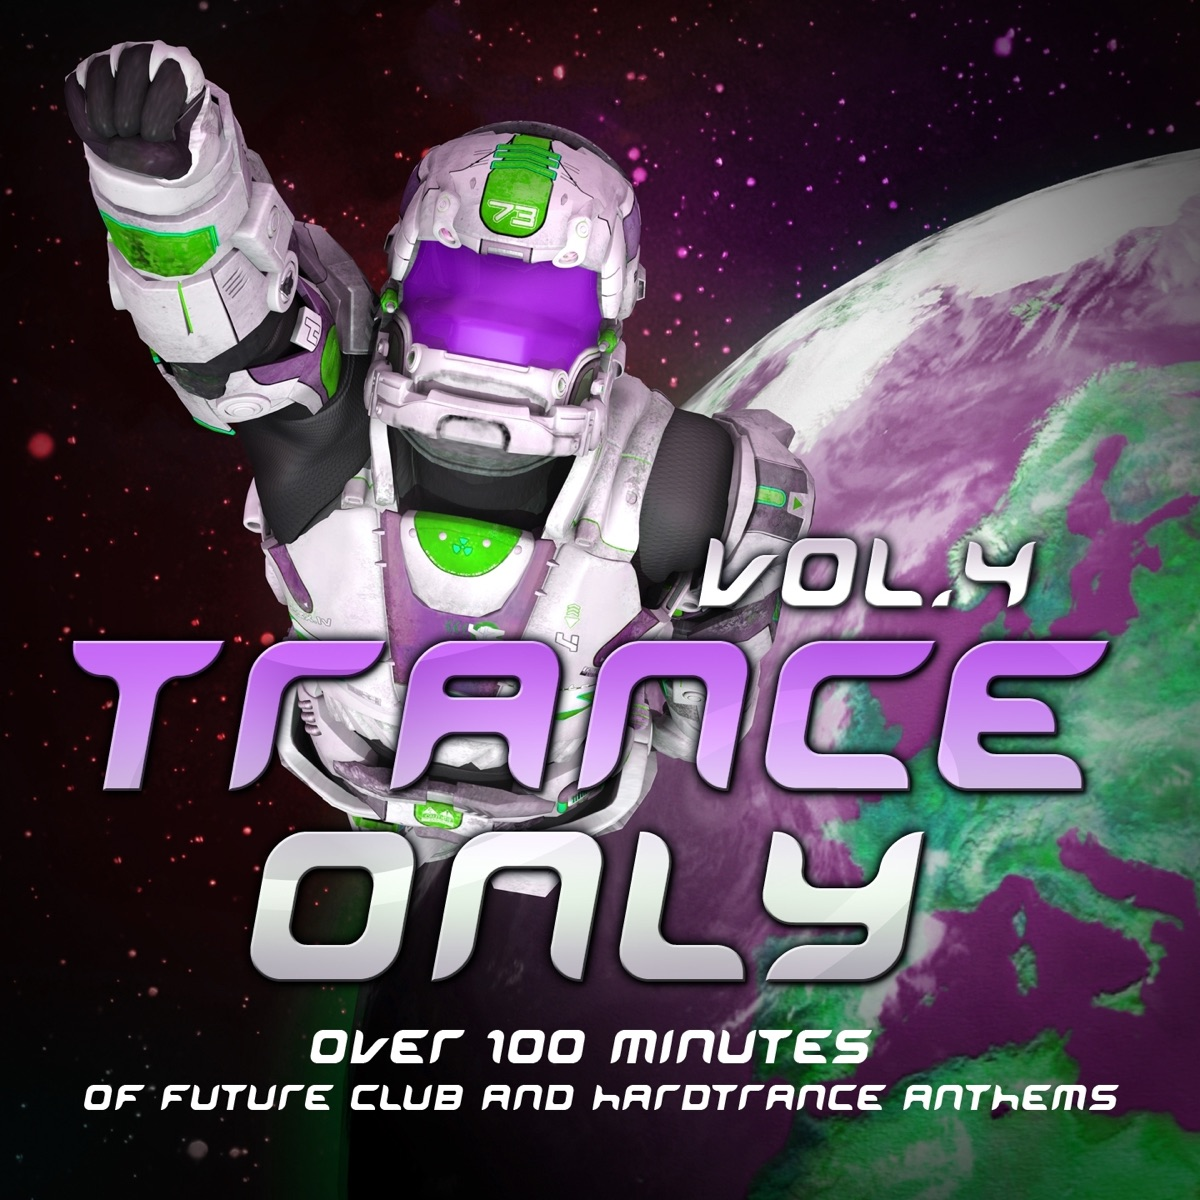 Trance Only Vol 4 Over 100 Minutes of Future Club and Hardtrance Anthems Various Artists CD cover